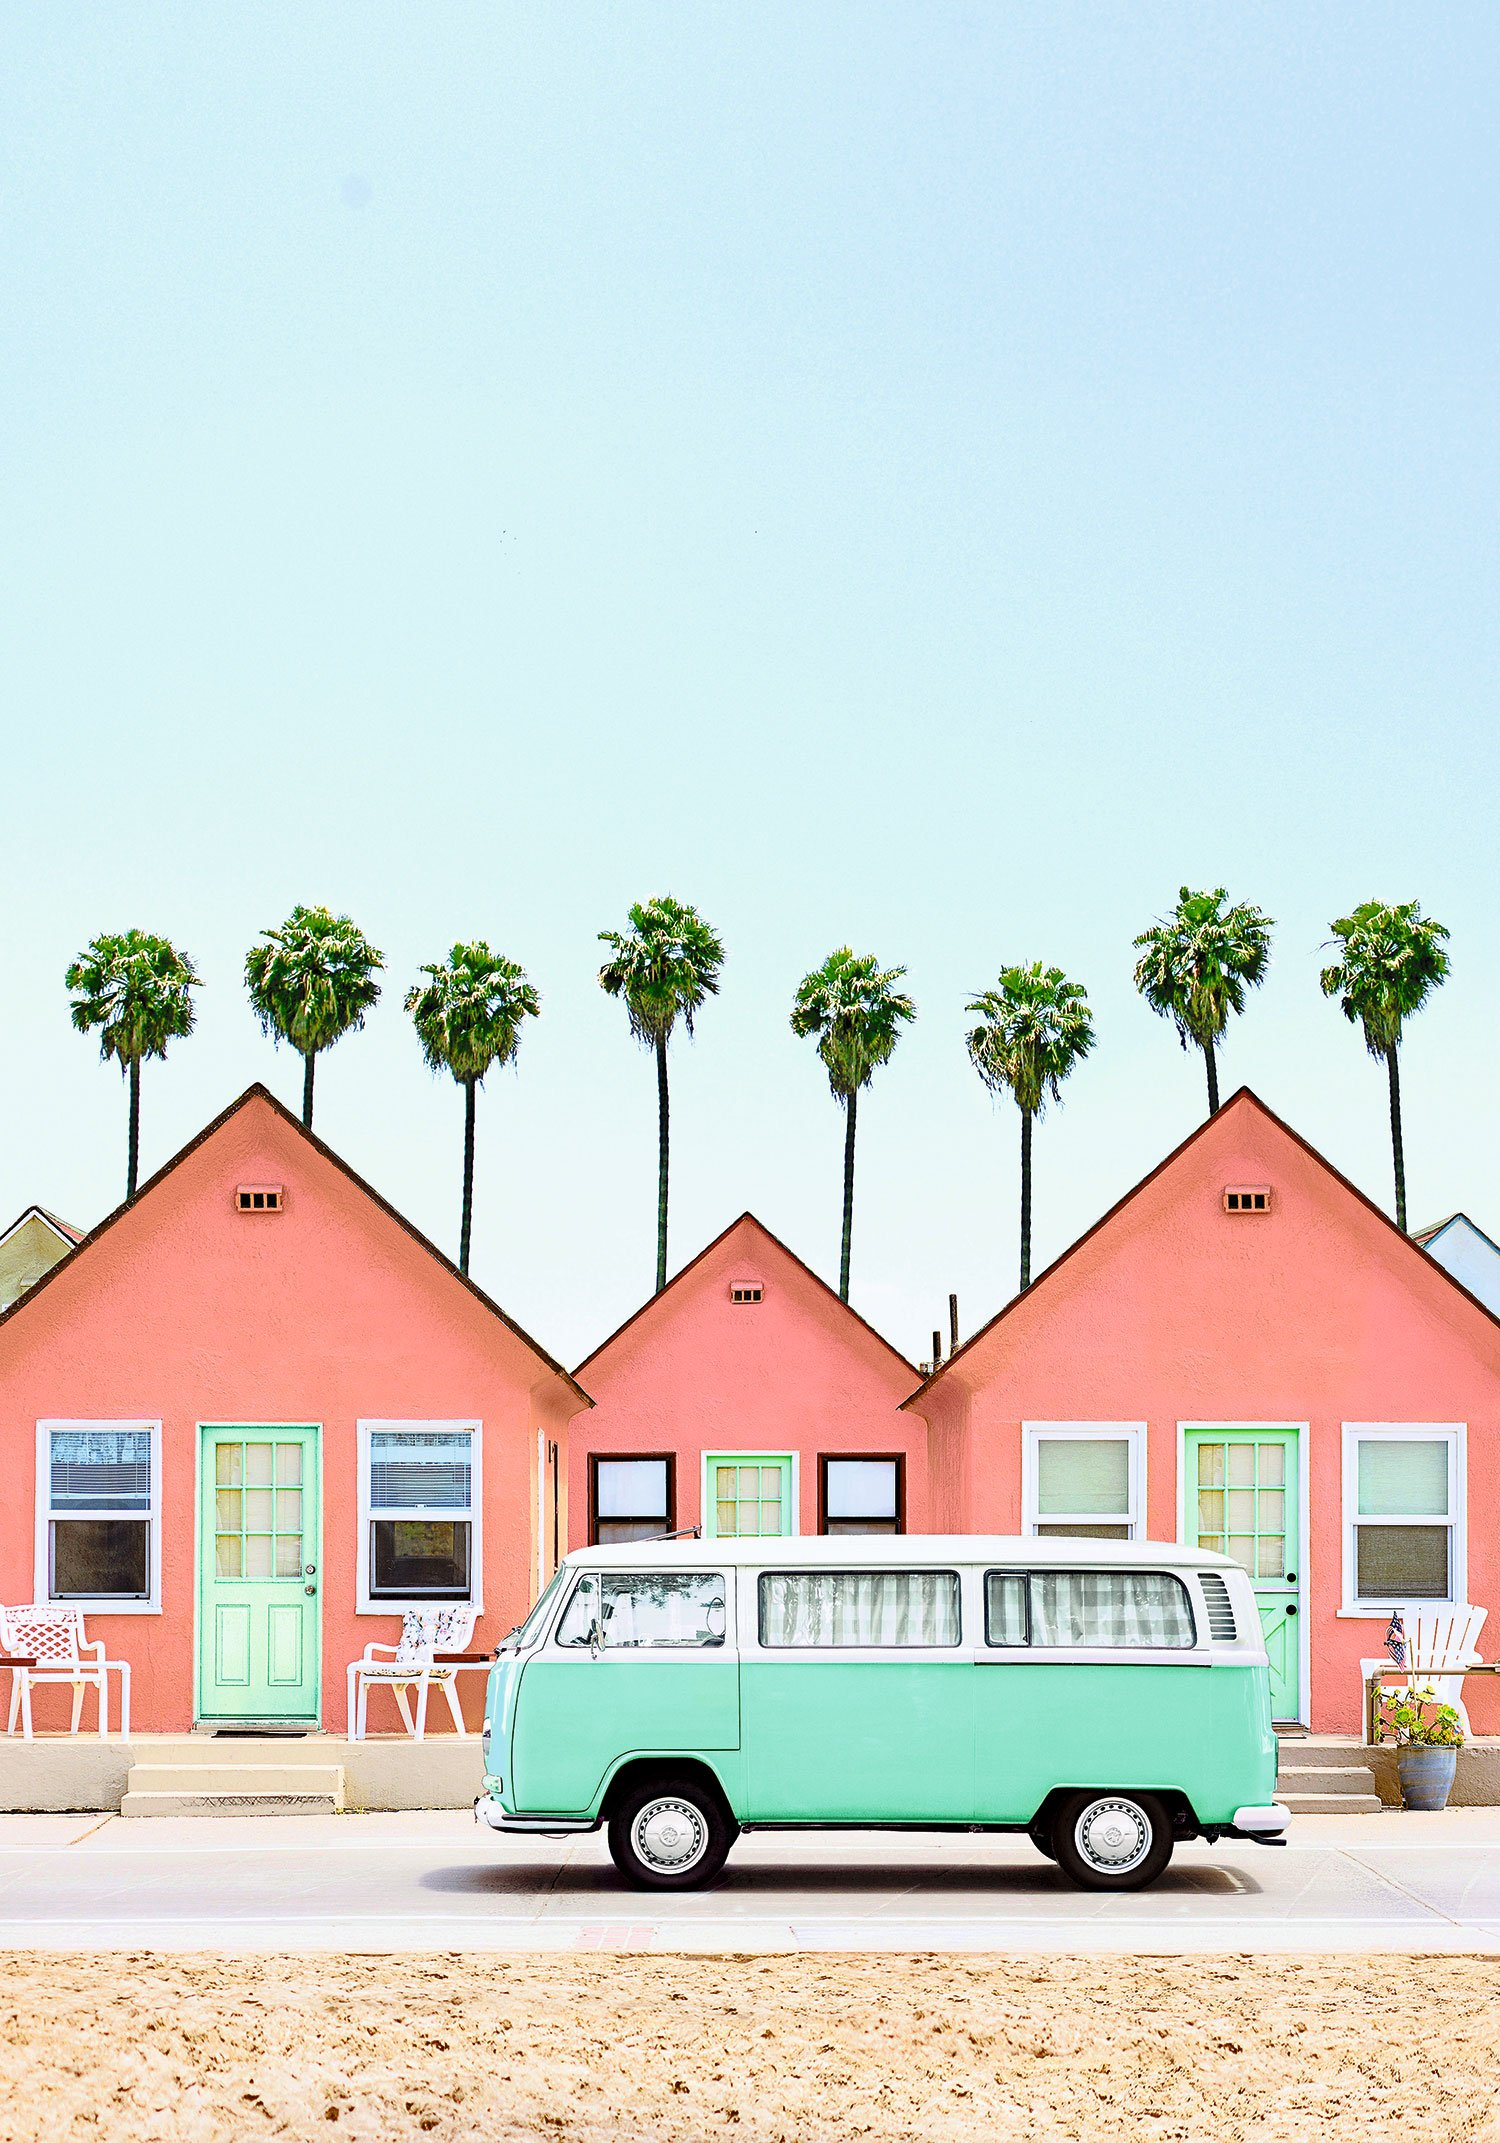 ROBERTS COTTAGES   Oceanside, California   Photo by Paul Fuentes   @paulfuentes_photo   paulfuentesdesign.com